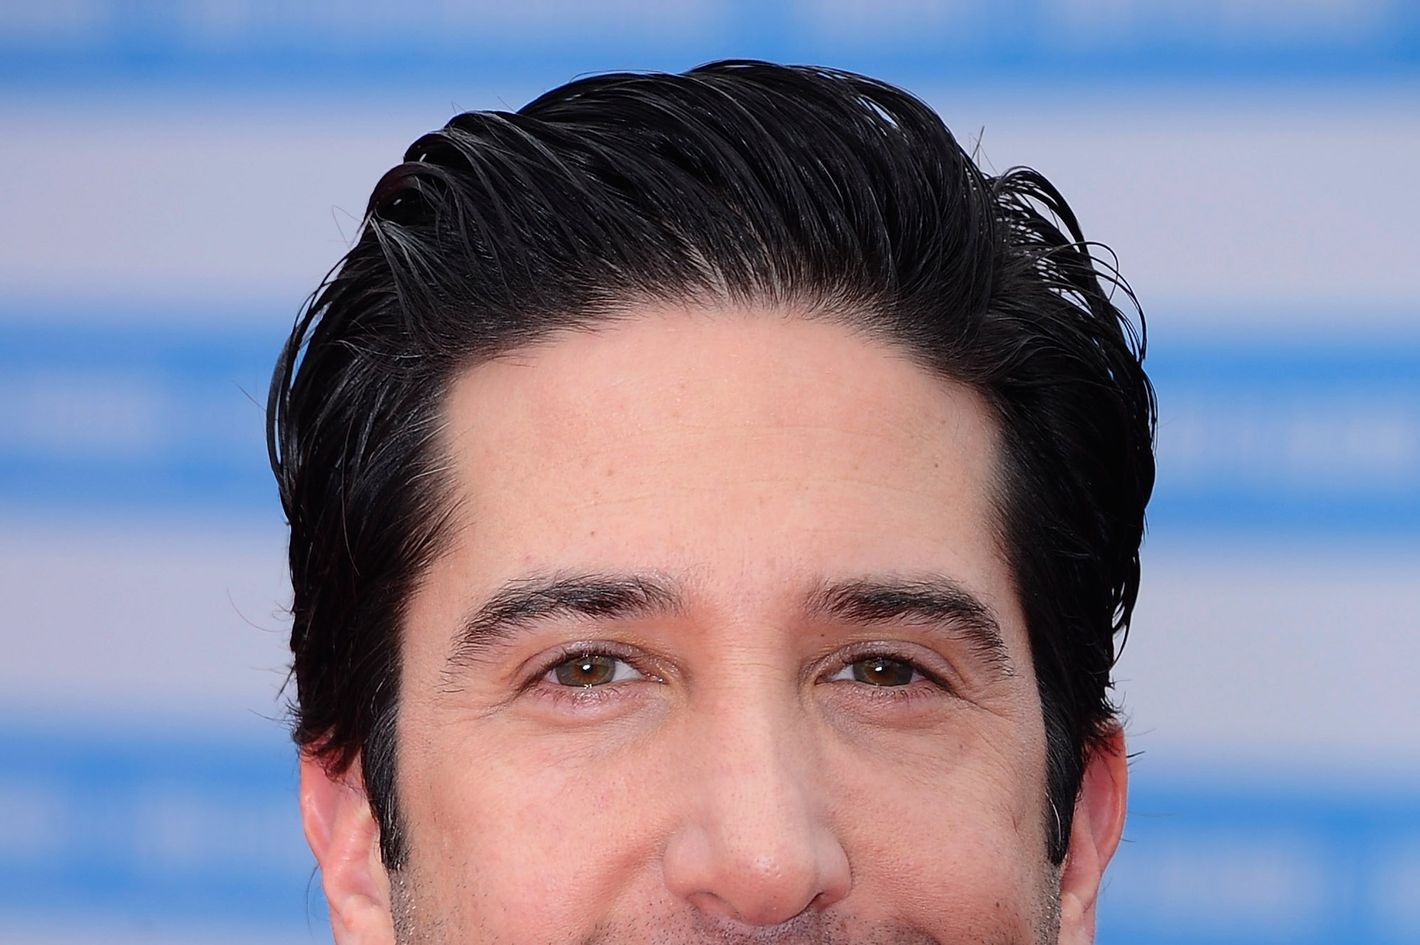 David schwimmer close up new picture